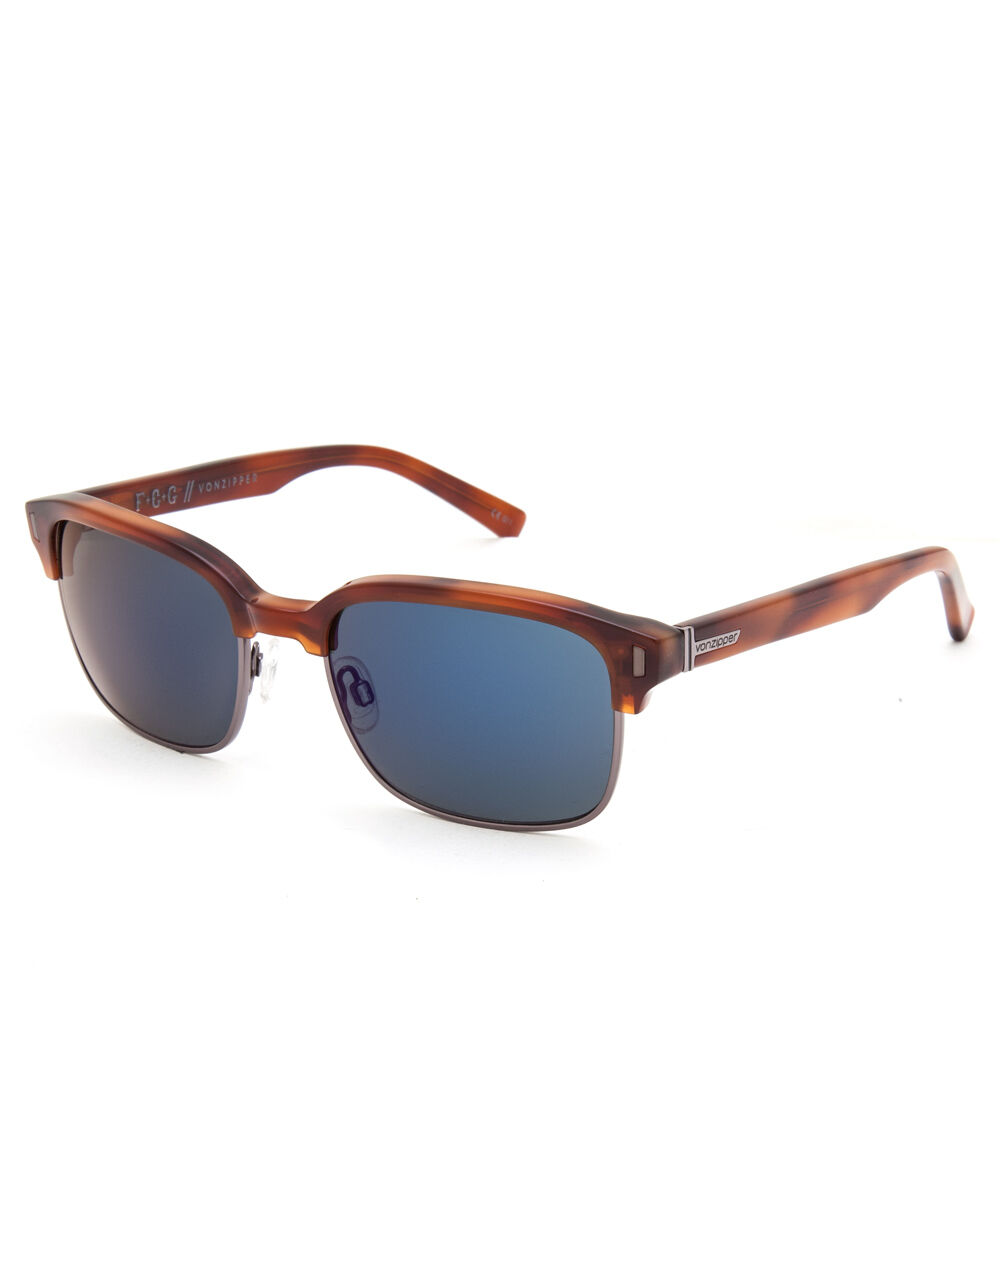 VON ZIPPER F.C.G. MAYFIELD SUNGLASSES